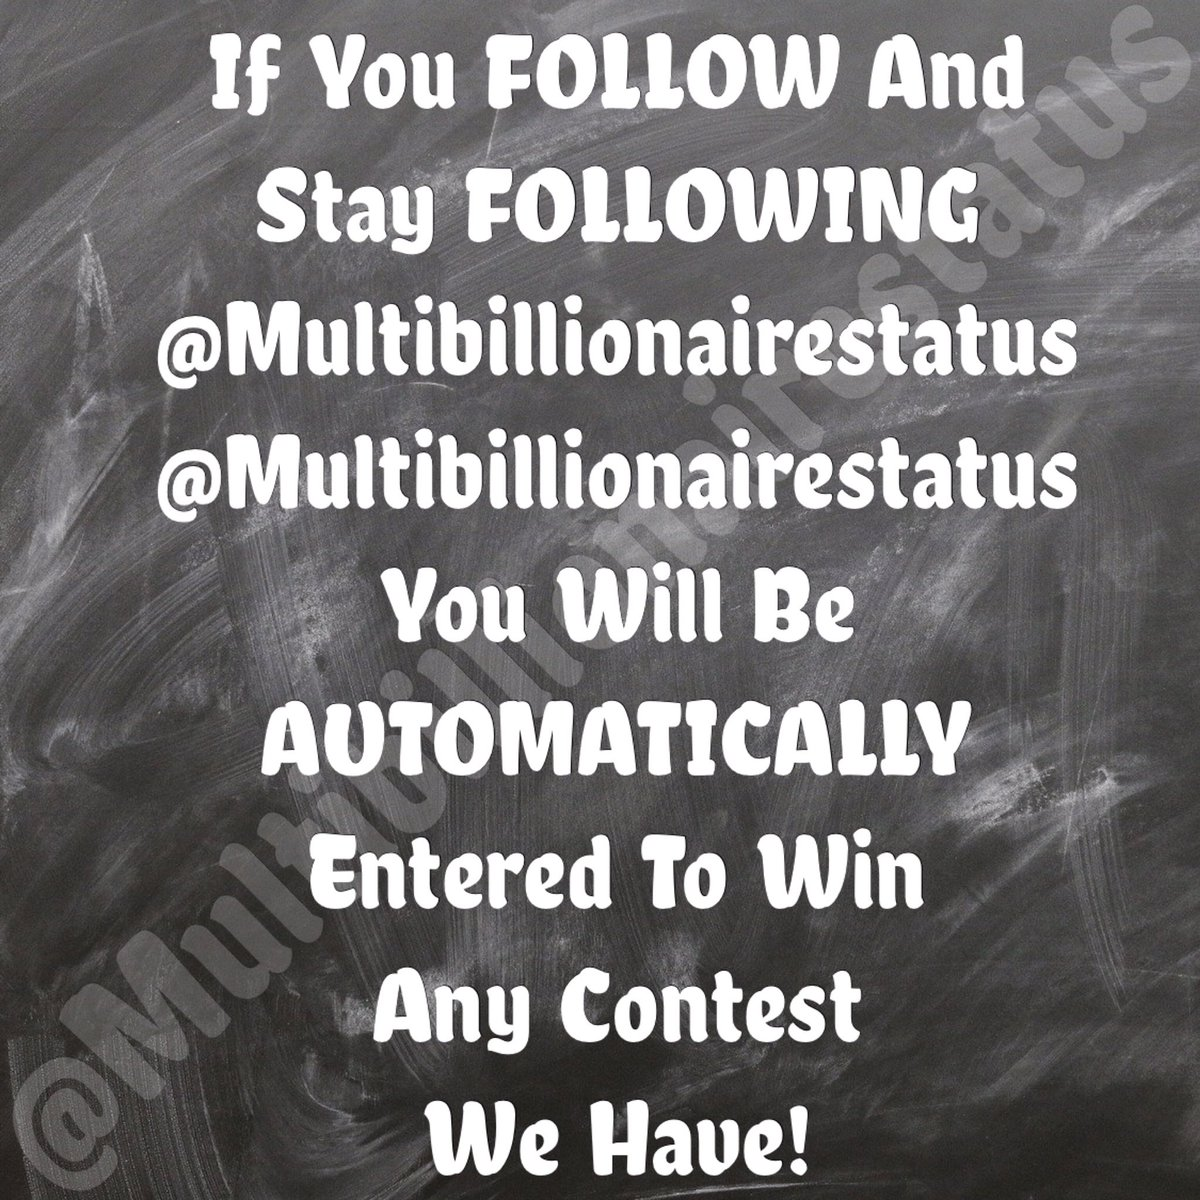 #follow #Contest #win #inspiration #inspirational #MotivationalQuotes  #motivation #Believe  #inspire Follow this Instagram account 👇🏿👇🏿👇🏿👇🏿👇🏿👇🏿👇🏿👇🏿👇🏿👇🏿 https://t.co/NRy5Fm4lV8 https://t.co/OSX6lvPuWl